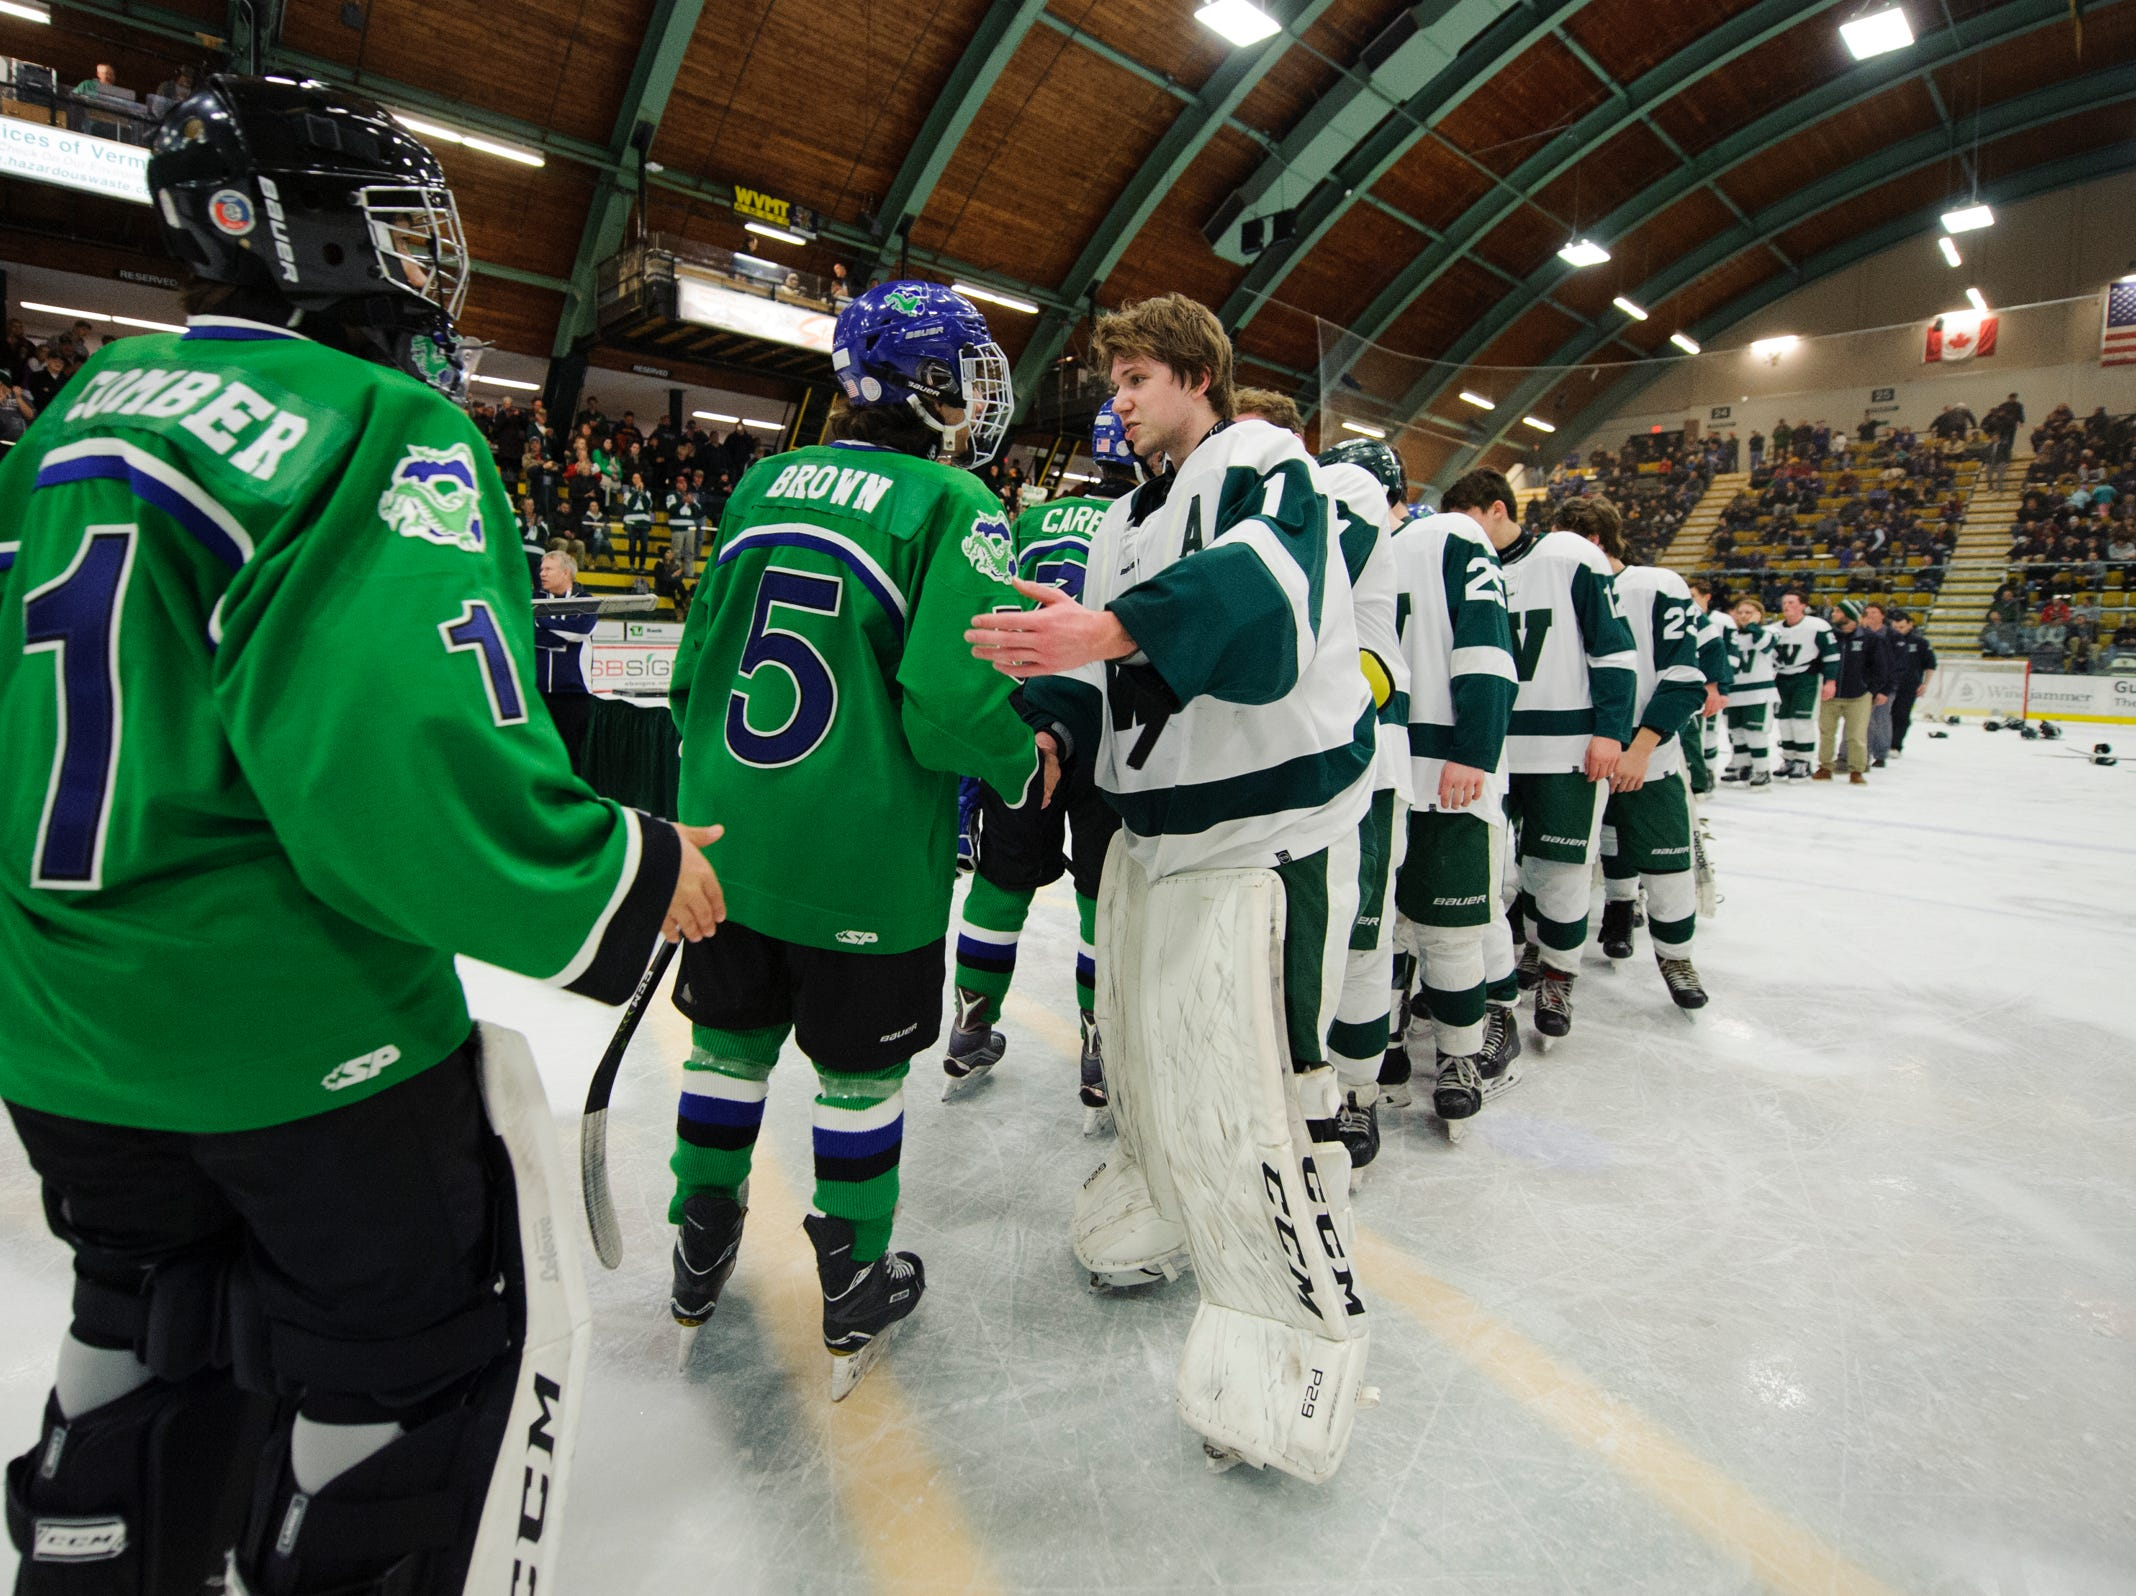 The teams shake hands during the DII boys hockey championship game between the Woodstock Wasps and the Colchester Lakers at Gutterson Field House on Wednesday night March 13, 2019 in Burlington, Vermont.